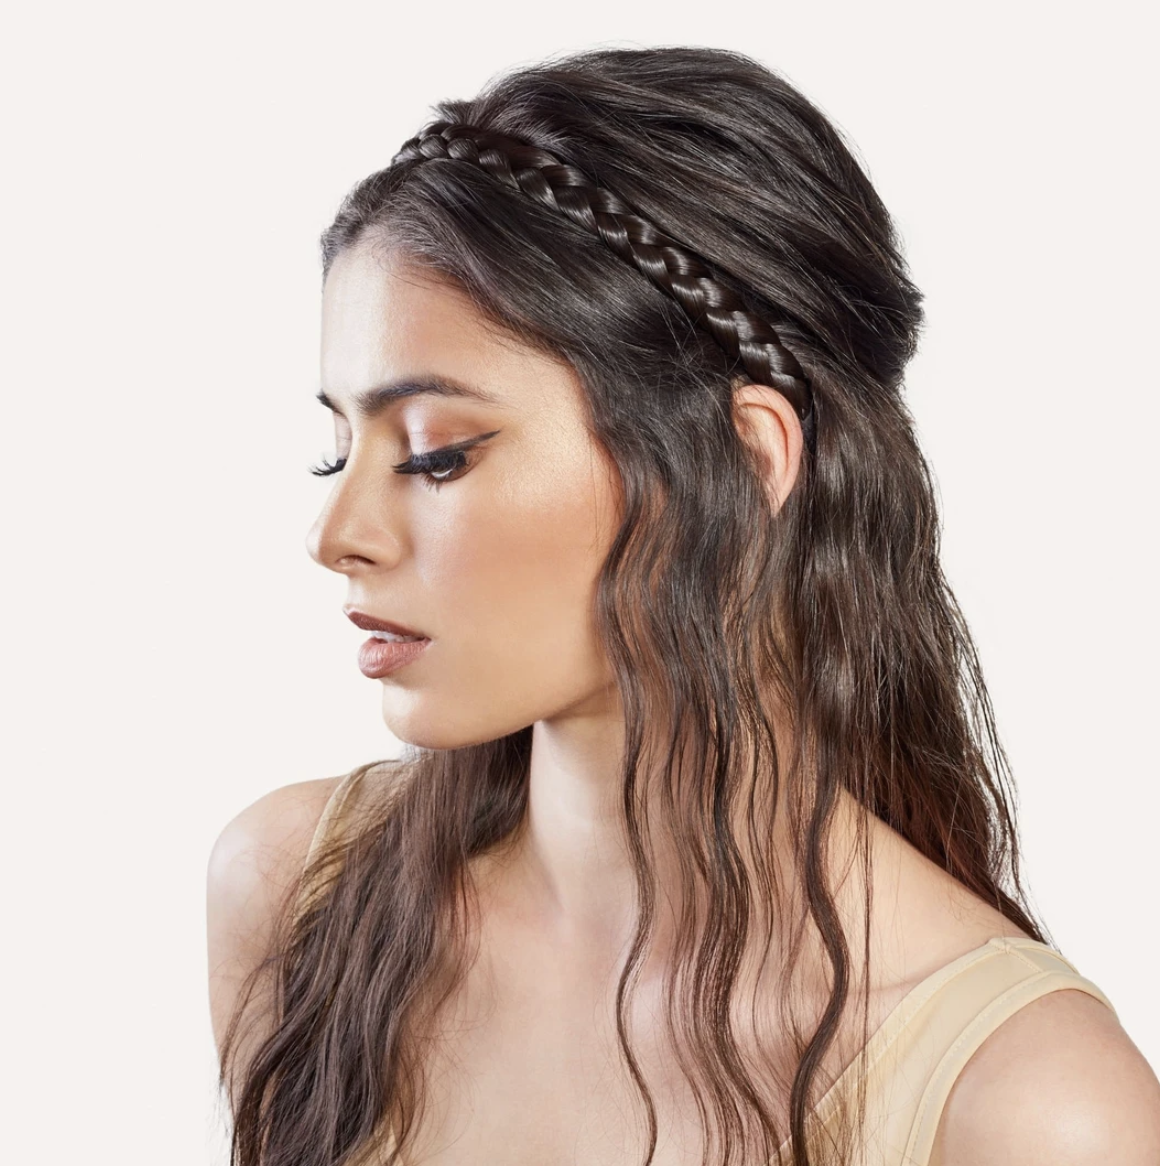 Inhhair Braided Headband